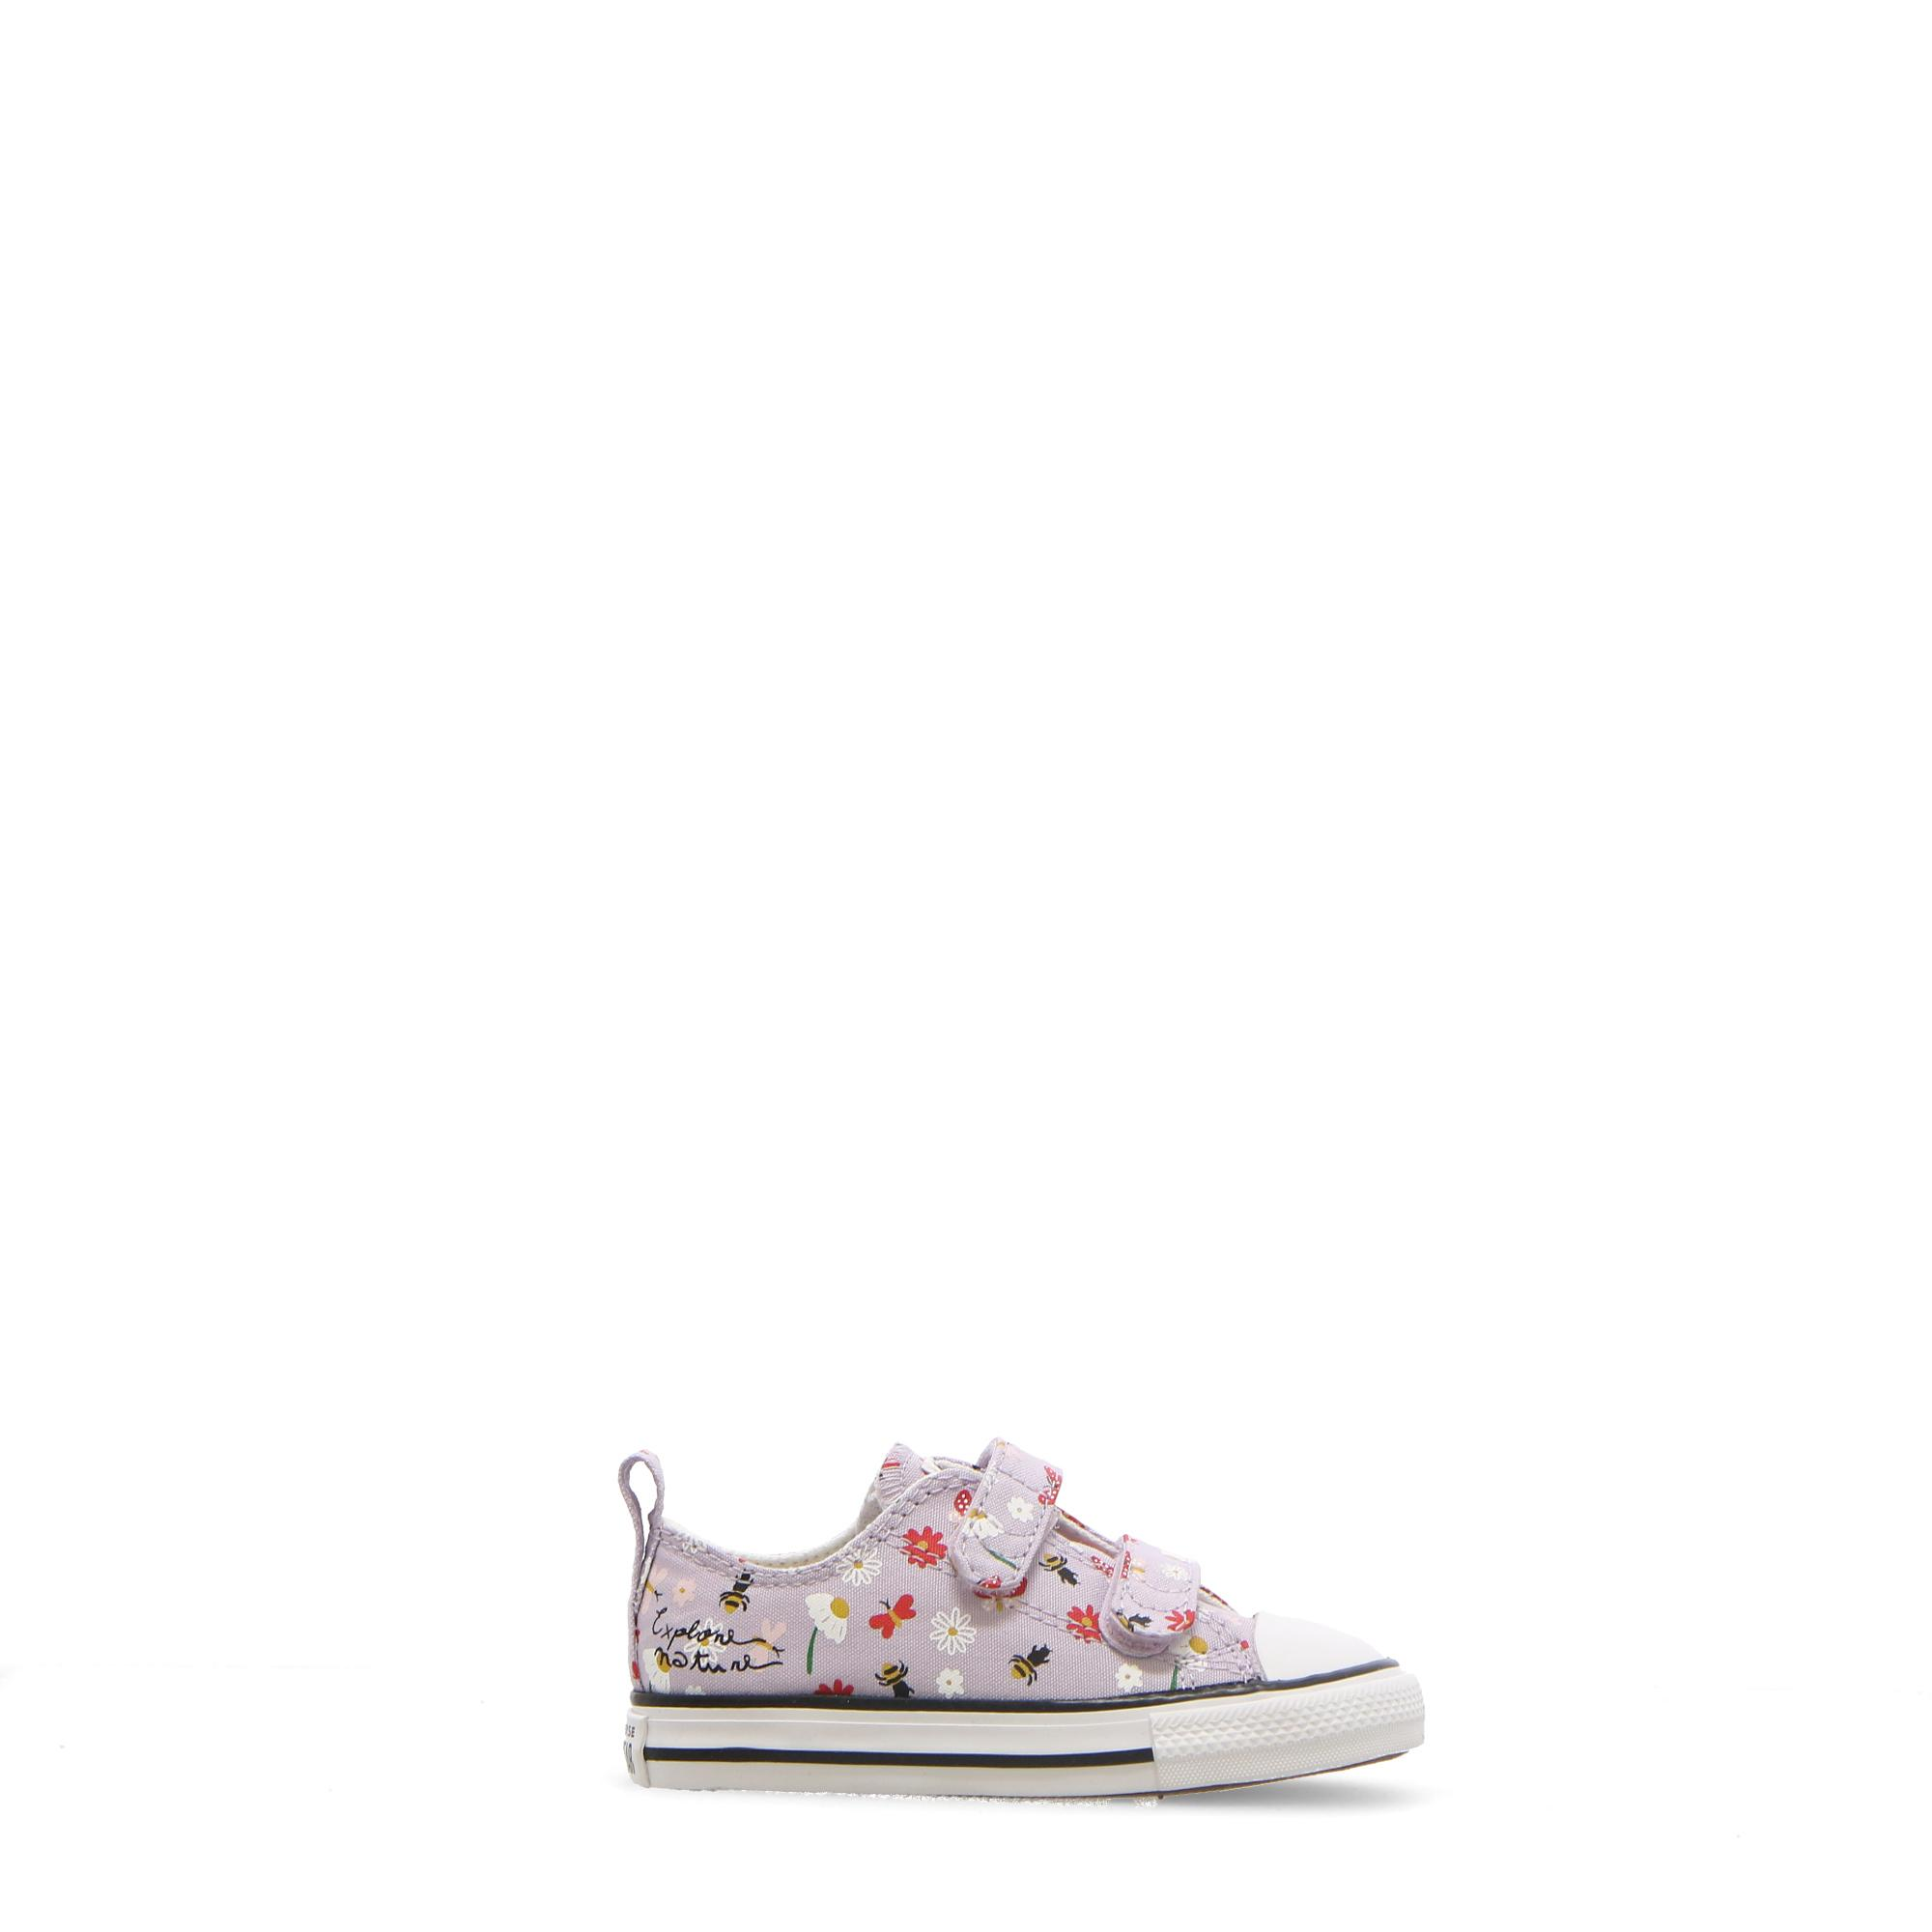 Converse Chuck Taylor All Star 2v Ox Infinite lilac white black